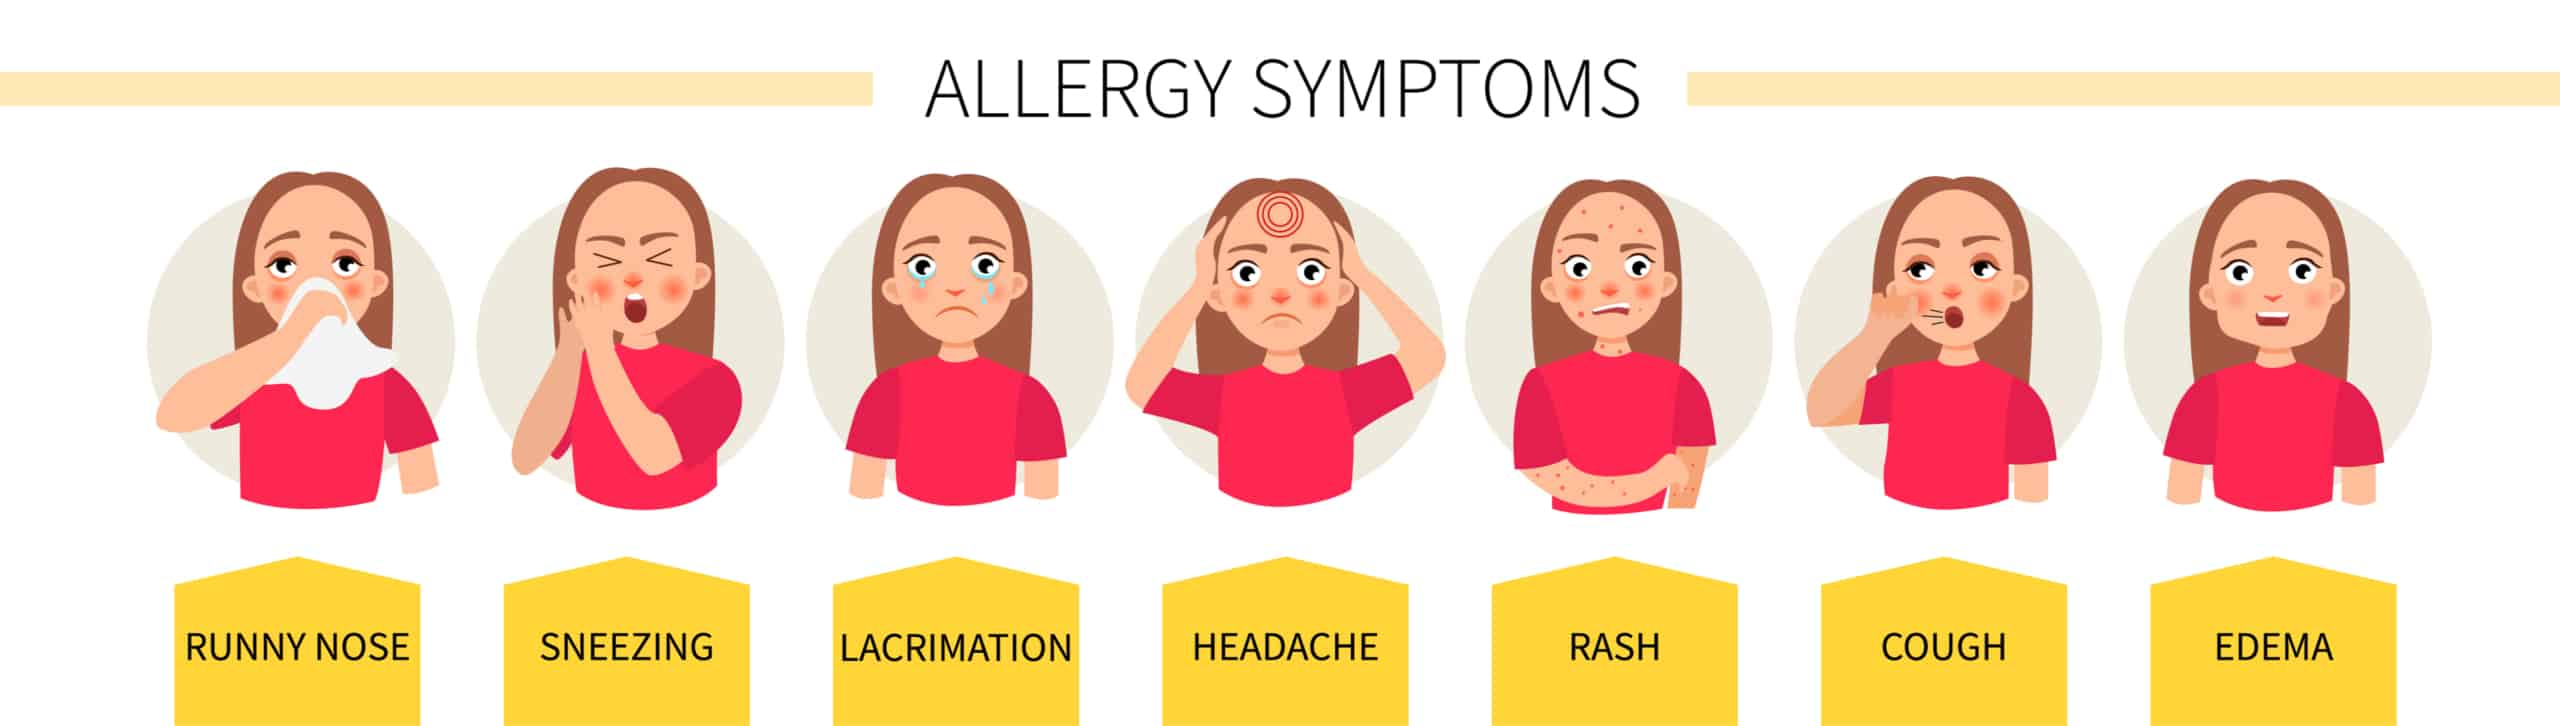 Allergy symptoms - lacrimation (watery eyes), sneezing, cough, runny nose, headache, rash, swelling - mold allergy